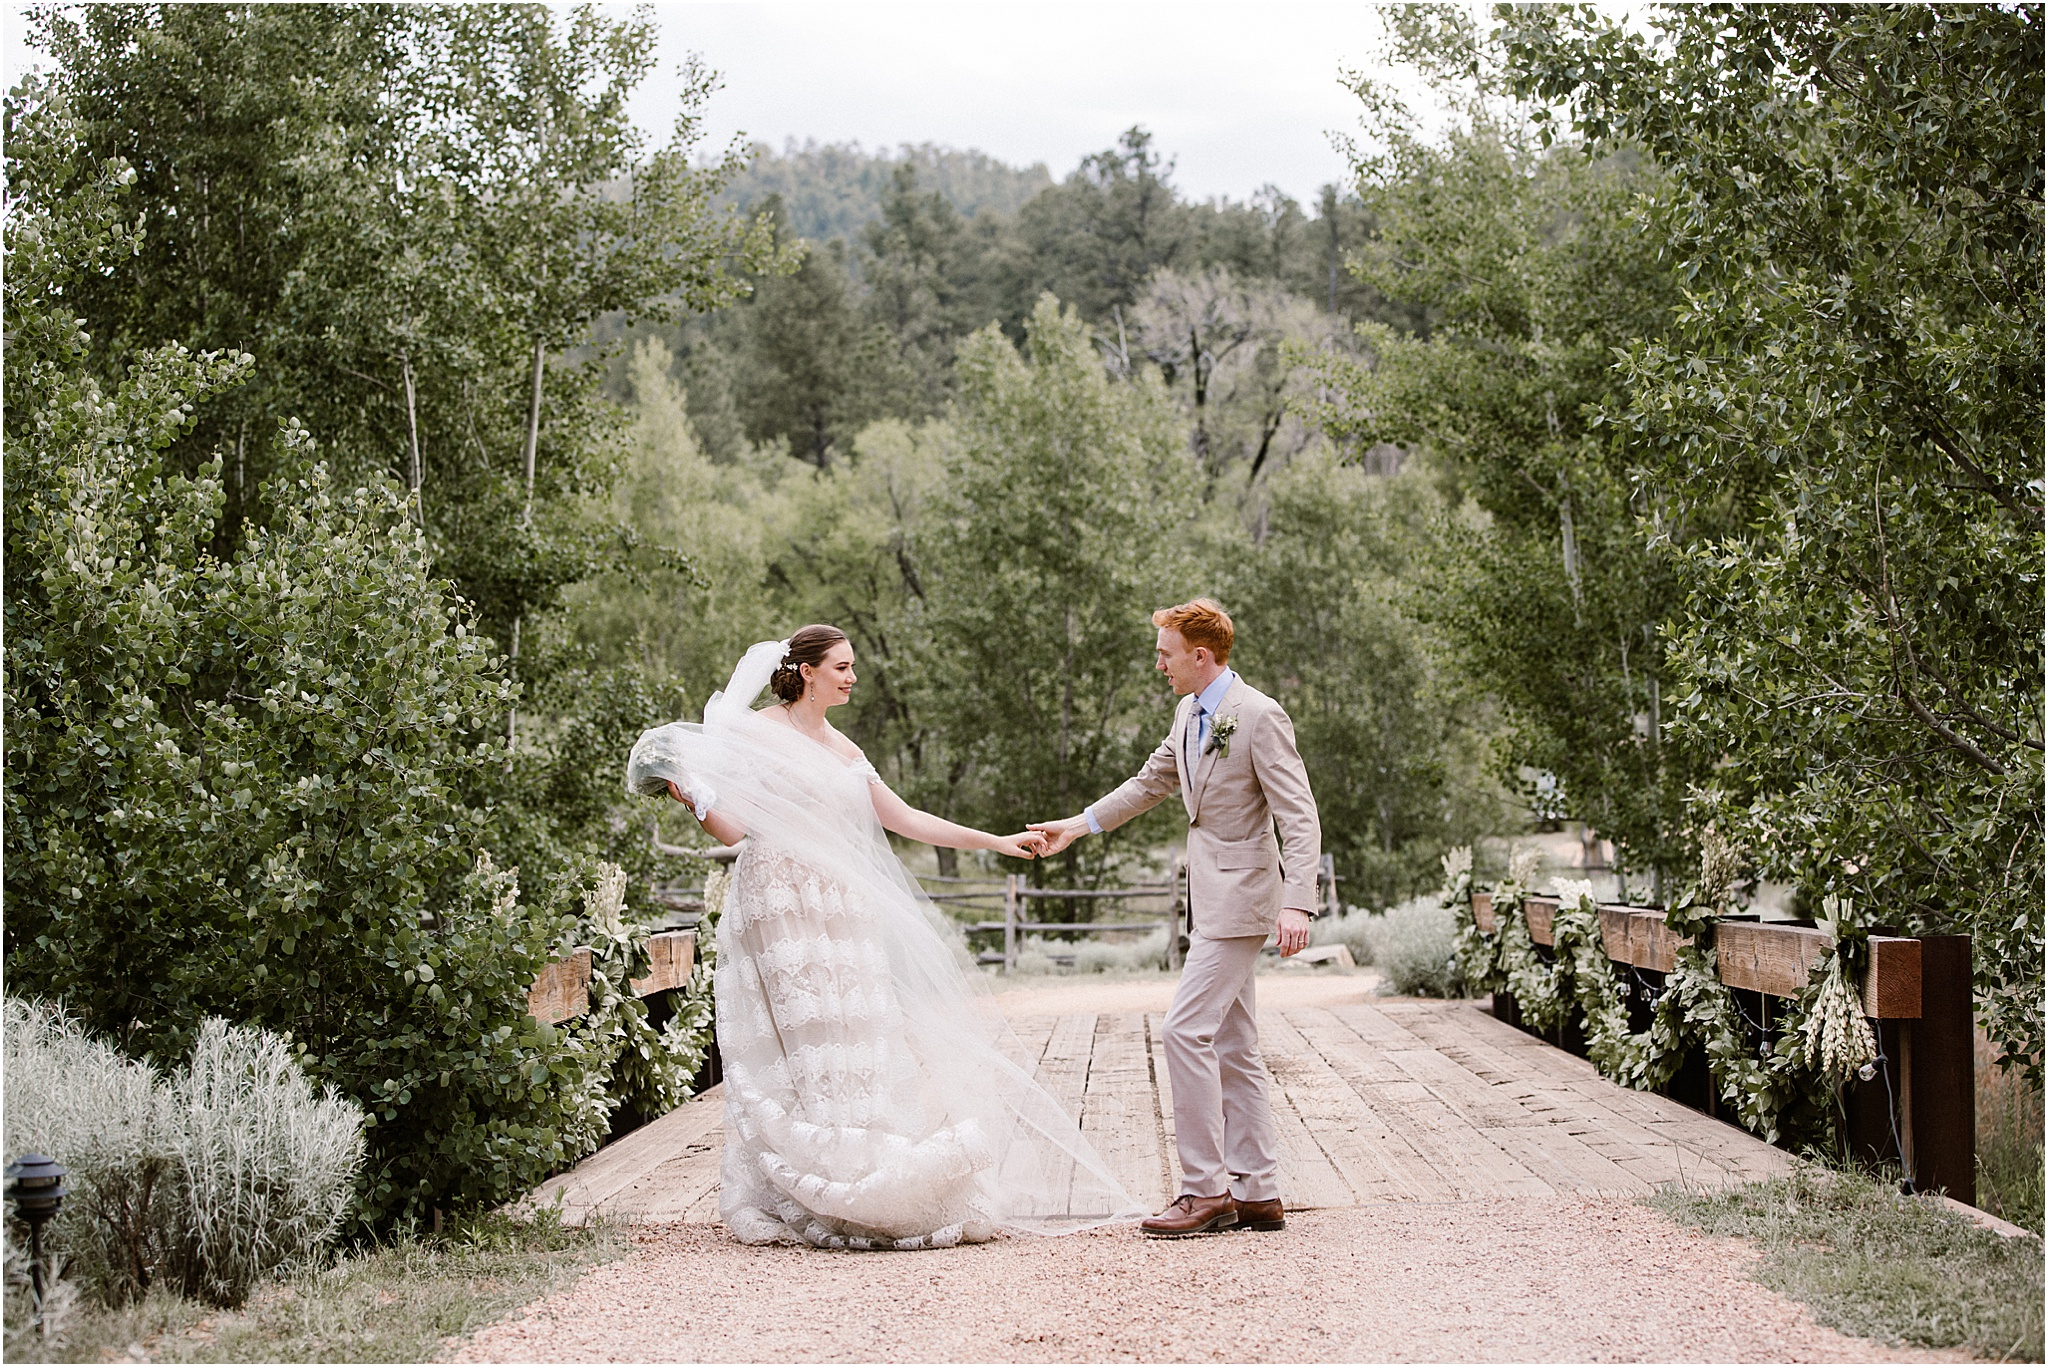 AMELIA_JASON_SANTA FE_ WEDDING_BLUE ROSE PHOTOGRAPHY96